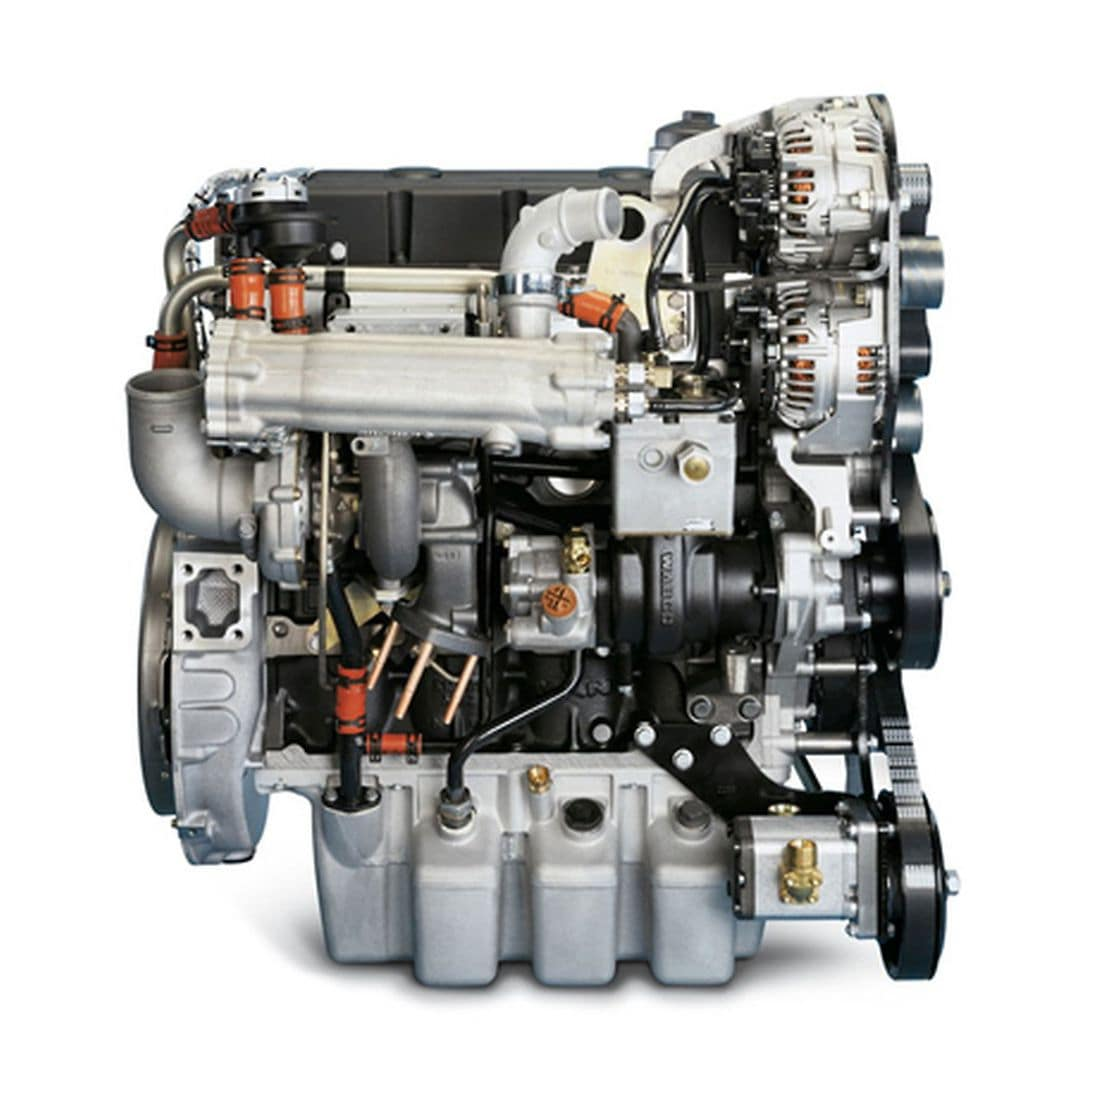 Sel Engine 4 Cylinder Turbocharged In Line D0834 Loh